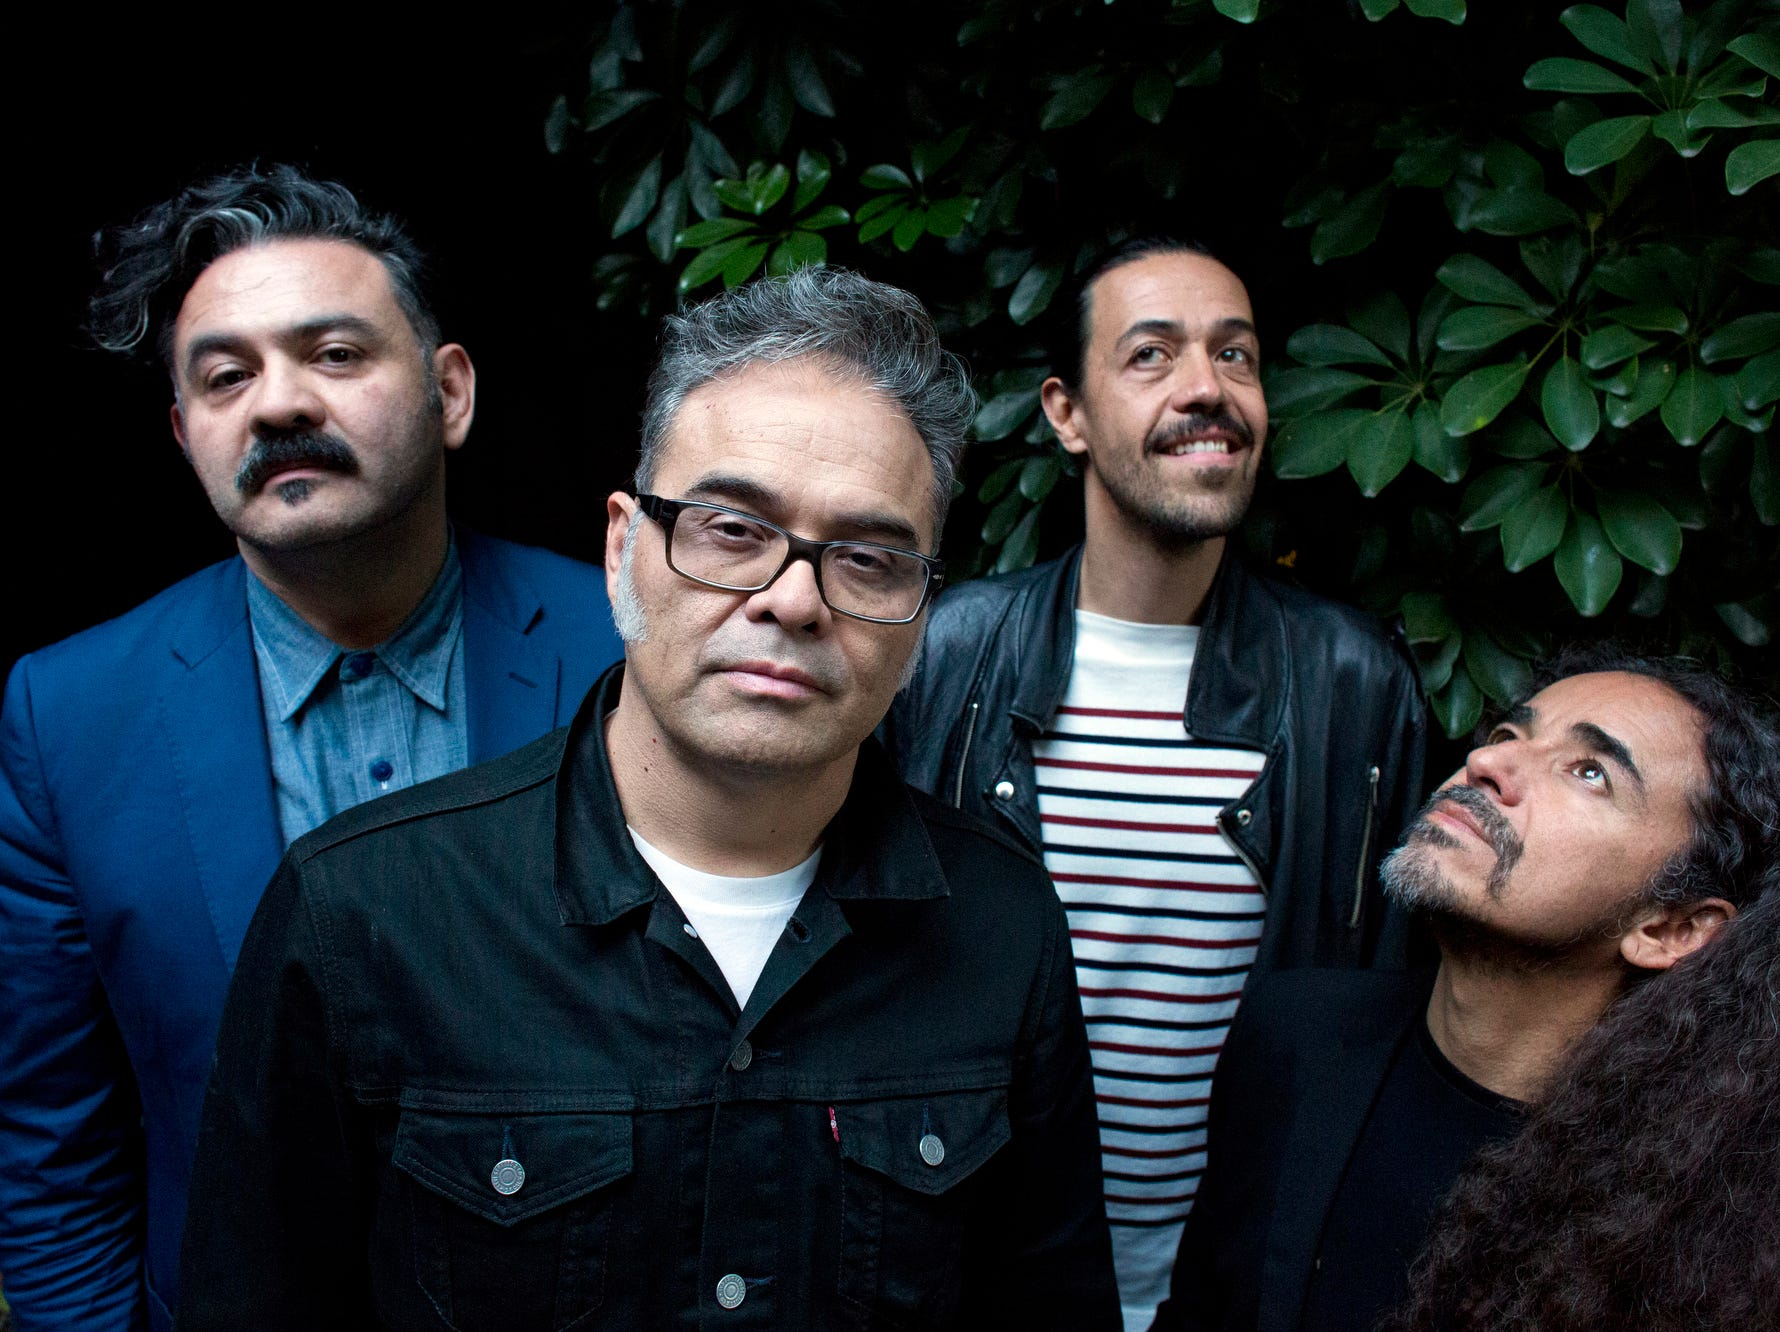 OCT. 3 CAFÉ TACVBA: 7:30 p.m. War Memorial Auditorium, $28.50-$38.50, tpac.org